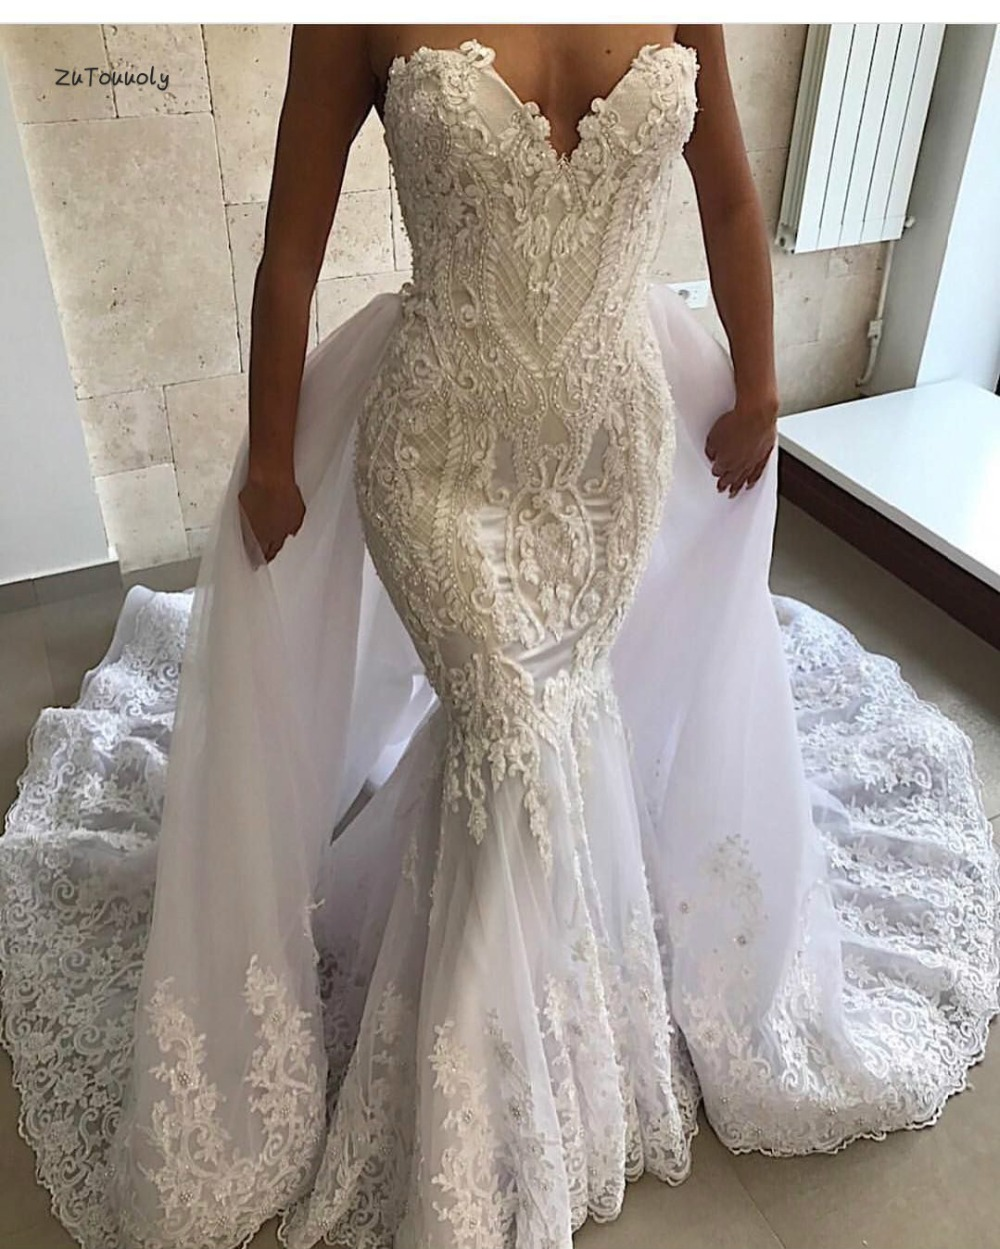 Beaded Wedding Dress With Detachable Train: Dramatic Mermaid Wedding Dress With Detachable Train